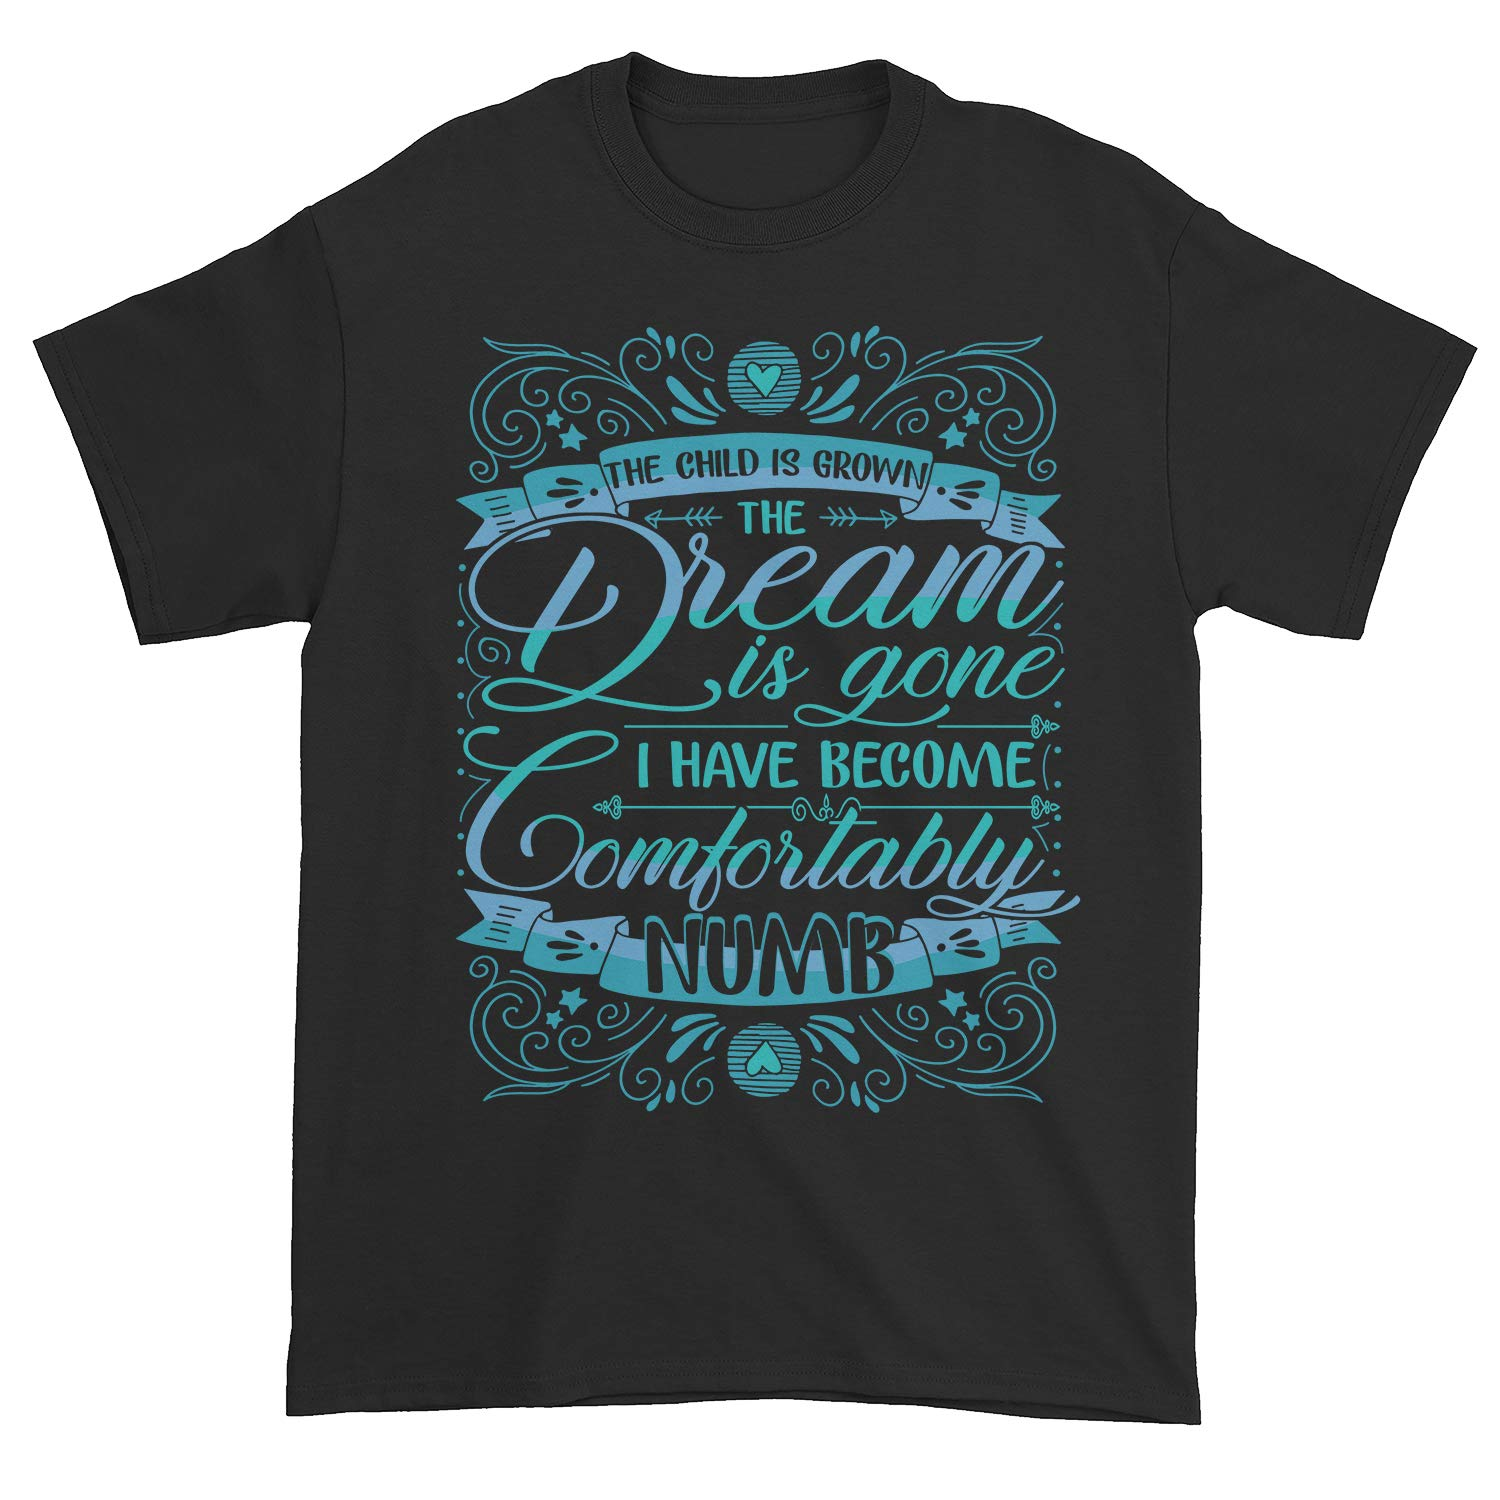 The Child Is Grown The Dream Is Gone I Have Become Comfortably Numb Pink Shirt 80 S 90 S M